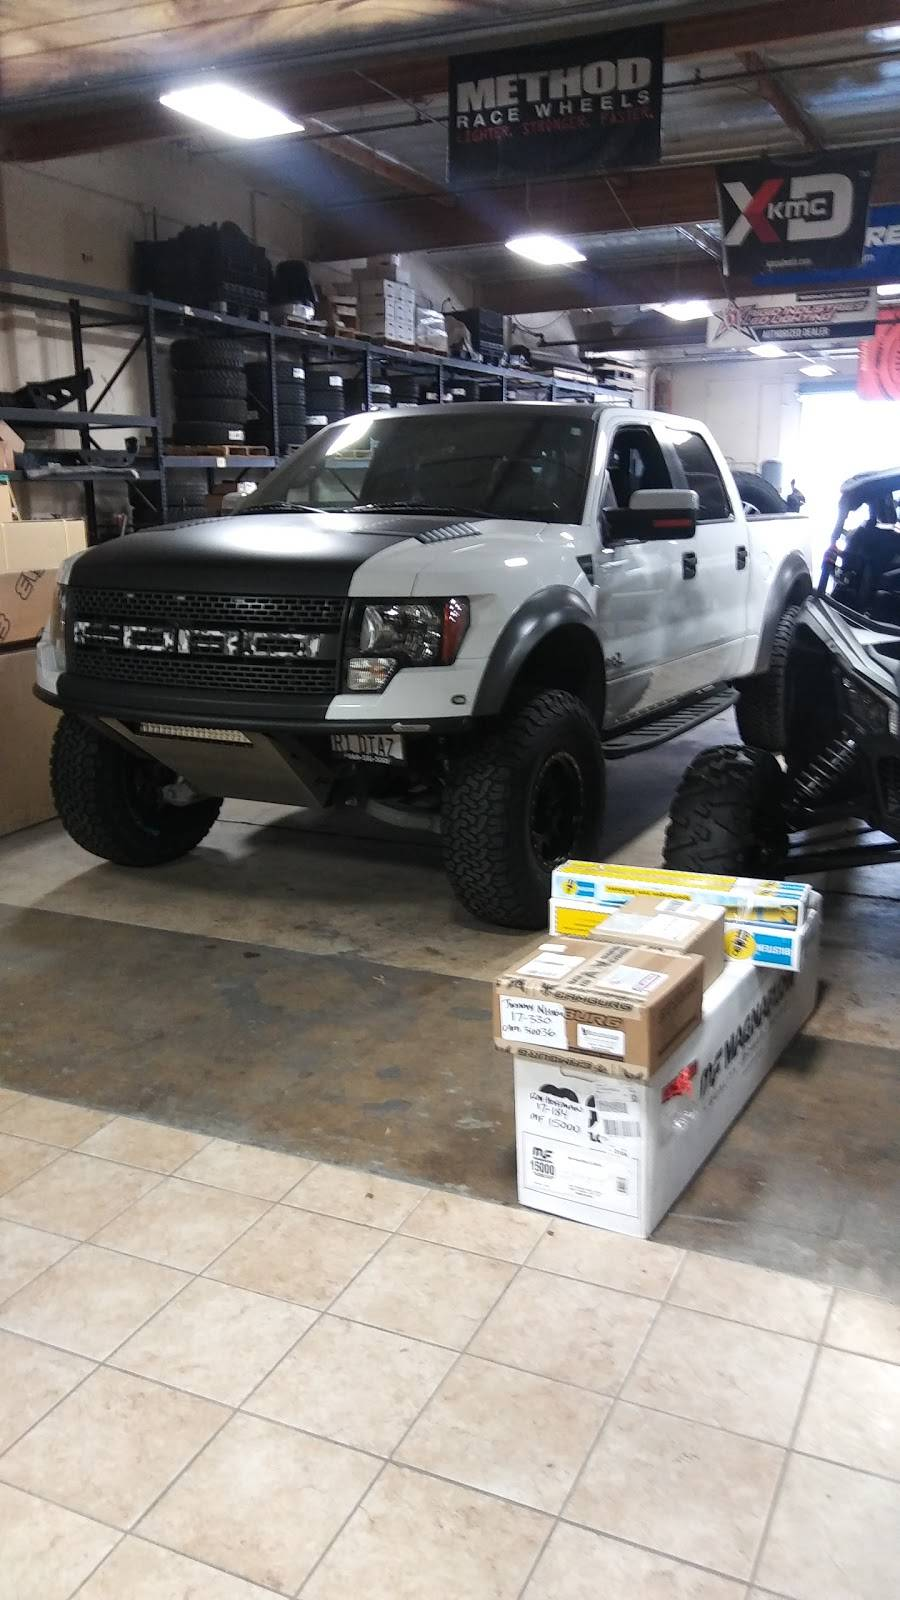 Outlaw Offroad/Off The Grid Equipt - car repair    Photo 7 of 10   Address: 1701 Carnegie Ave, Santa Ana, CA 92705, USA   Phone: (949) 581-5001